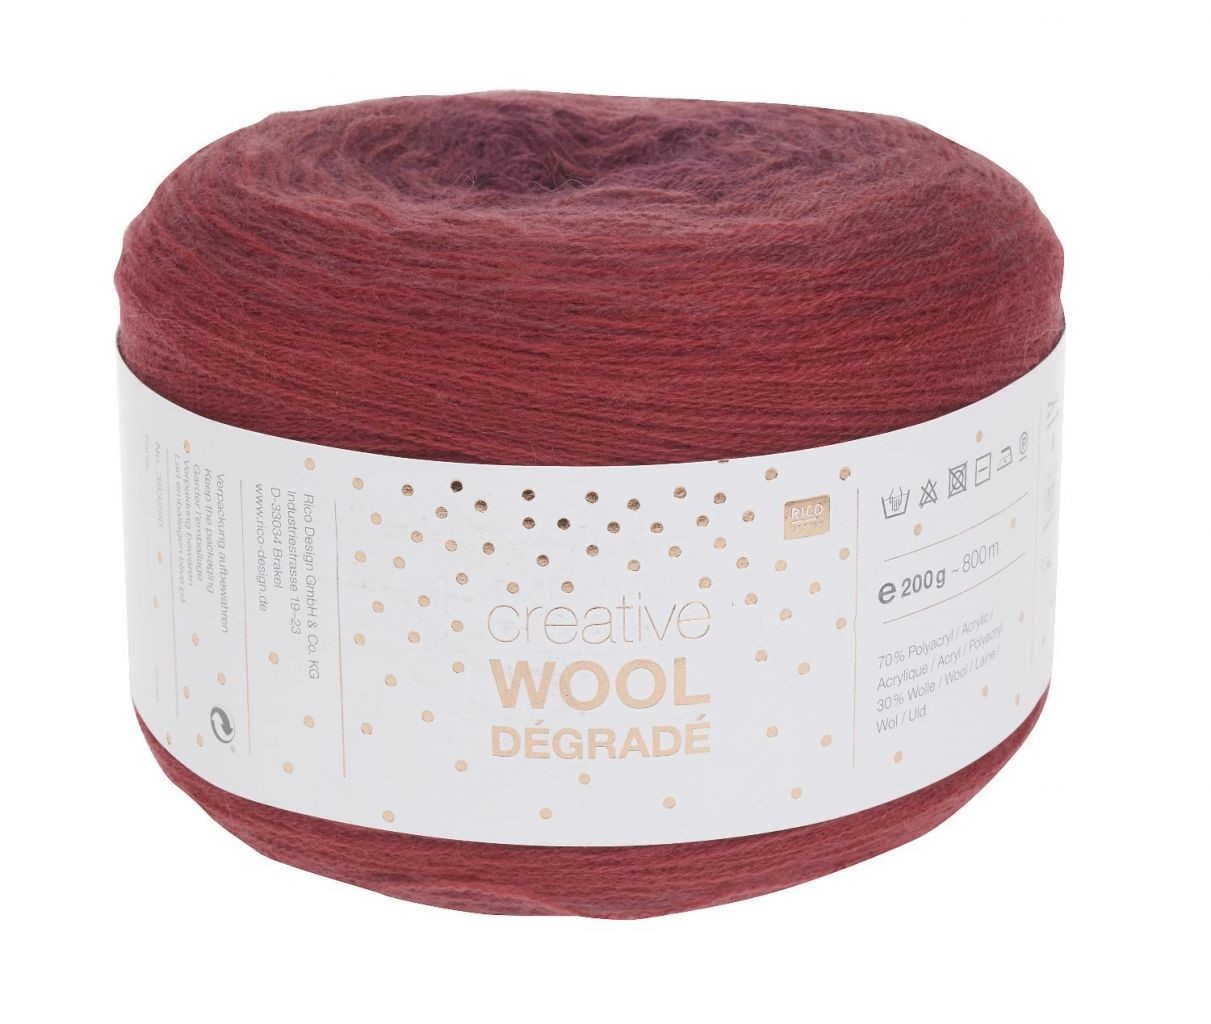 9 Creative wool degrade rico.jpg